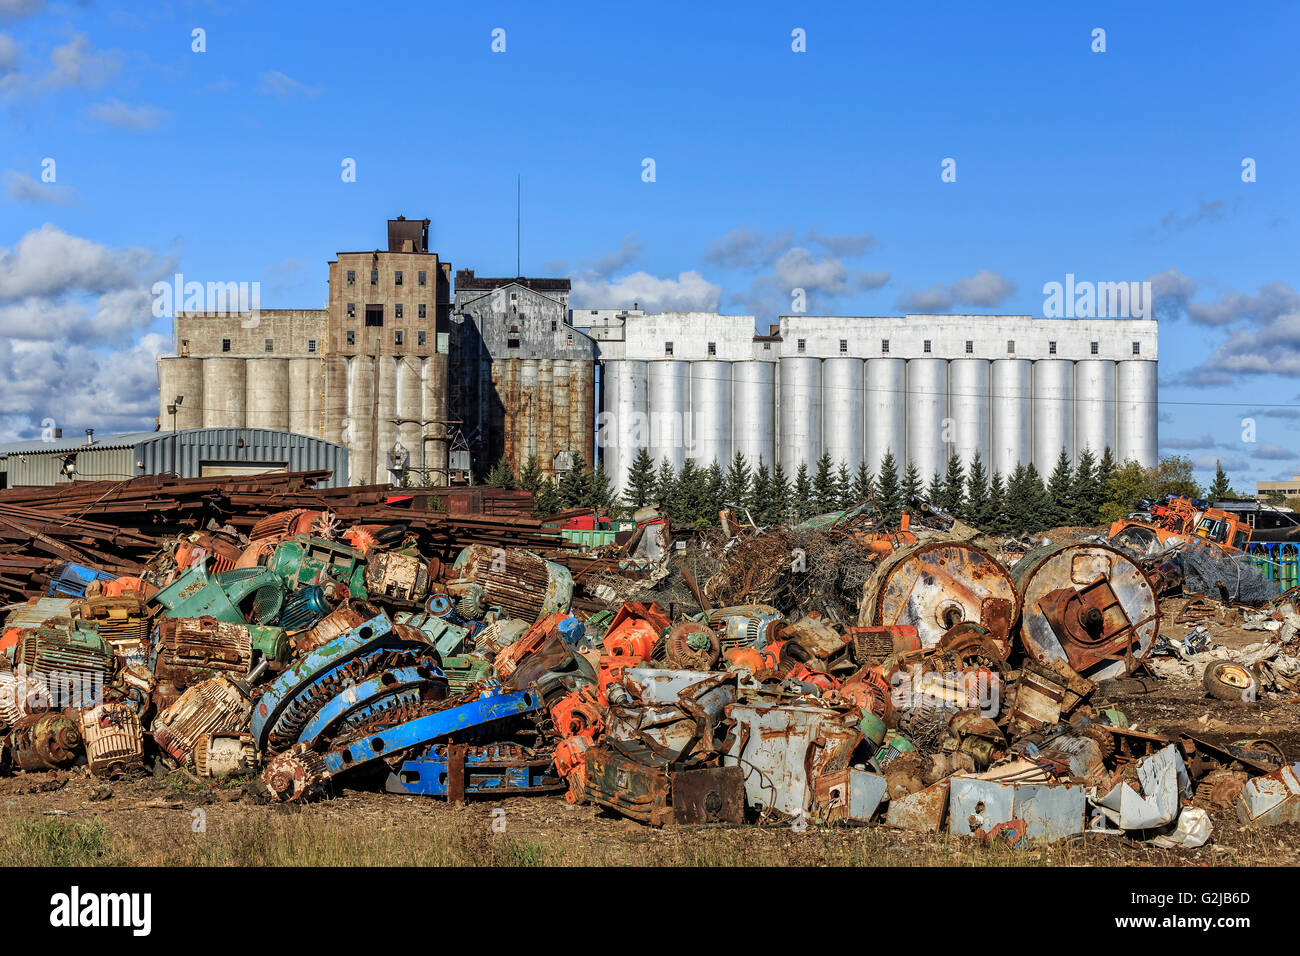 Scrap metal recycling, with an abandoned grain elevator in background, Thunder Bay, Ontario, Canada. - Stock Image